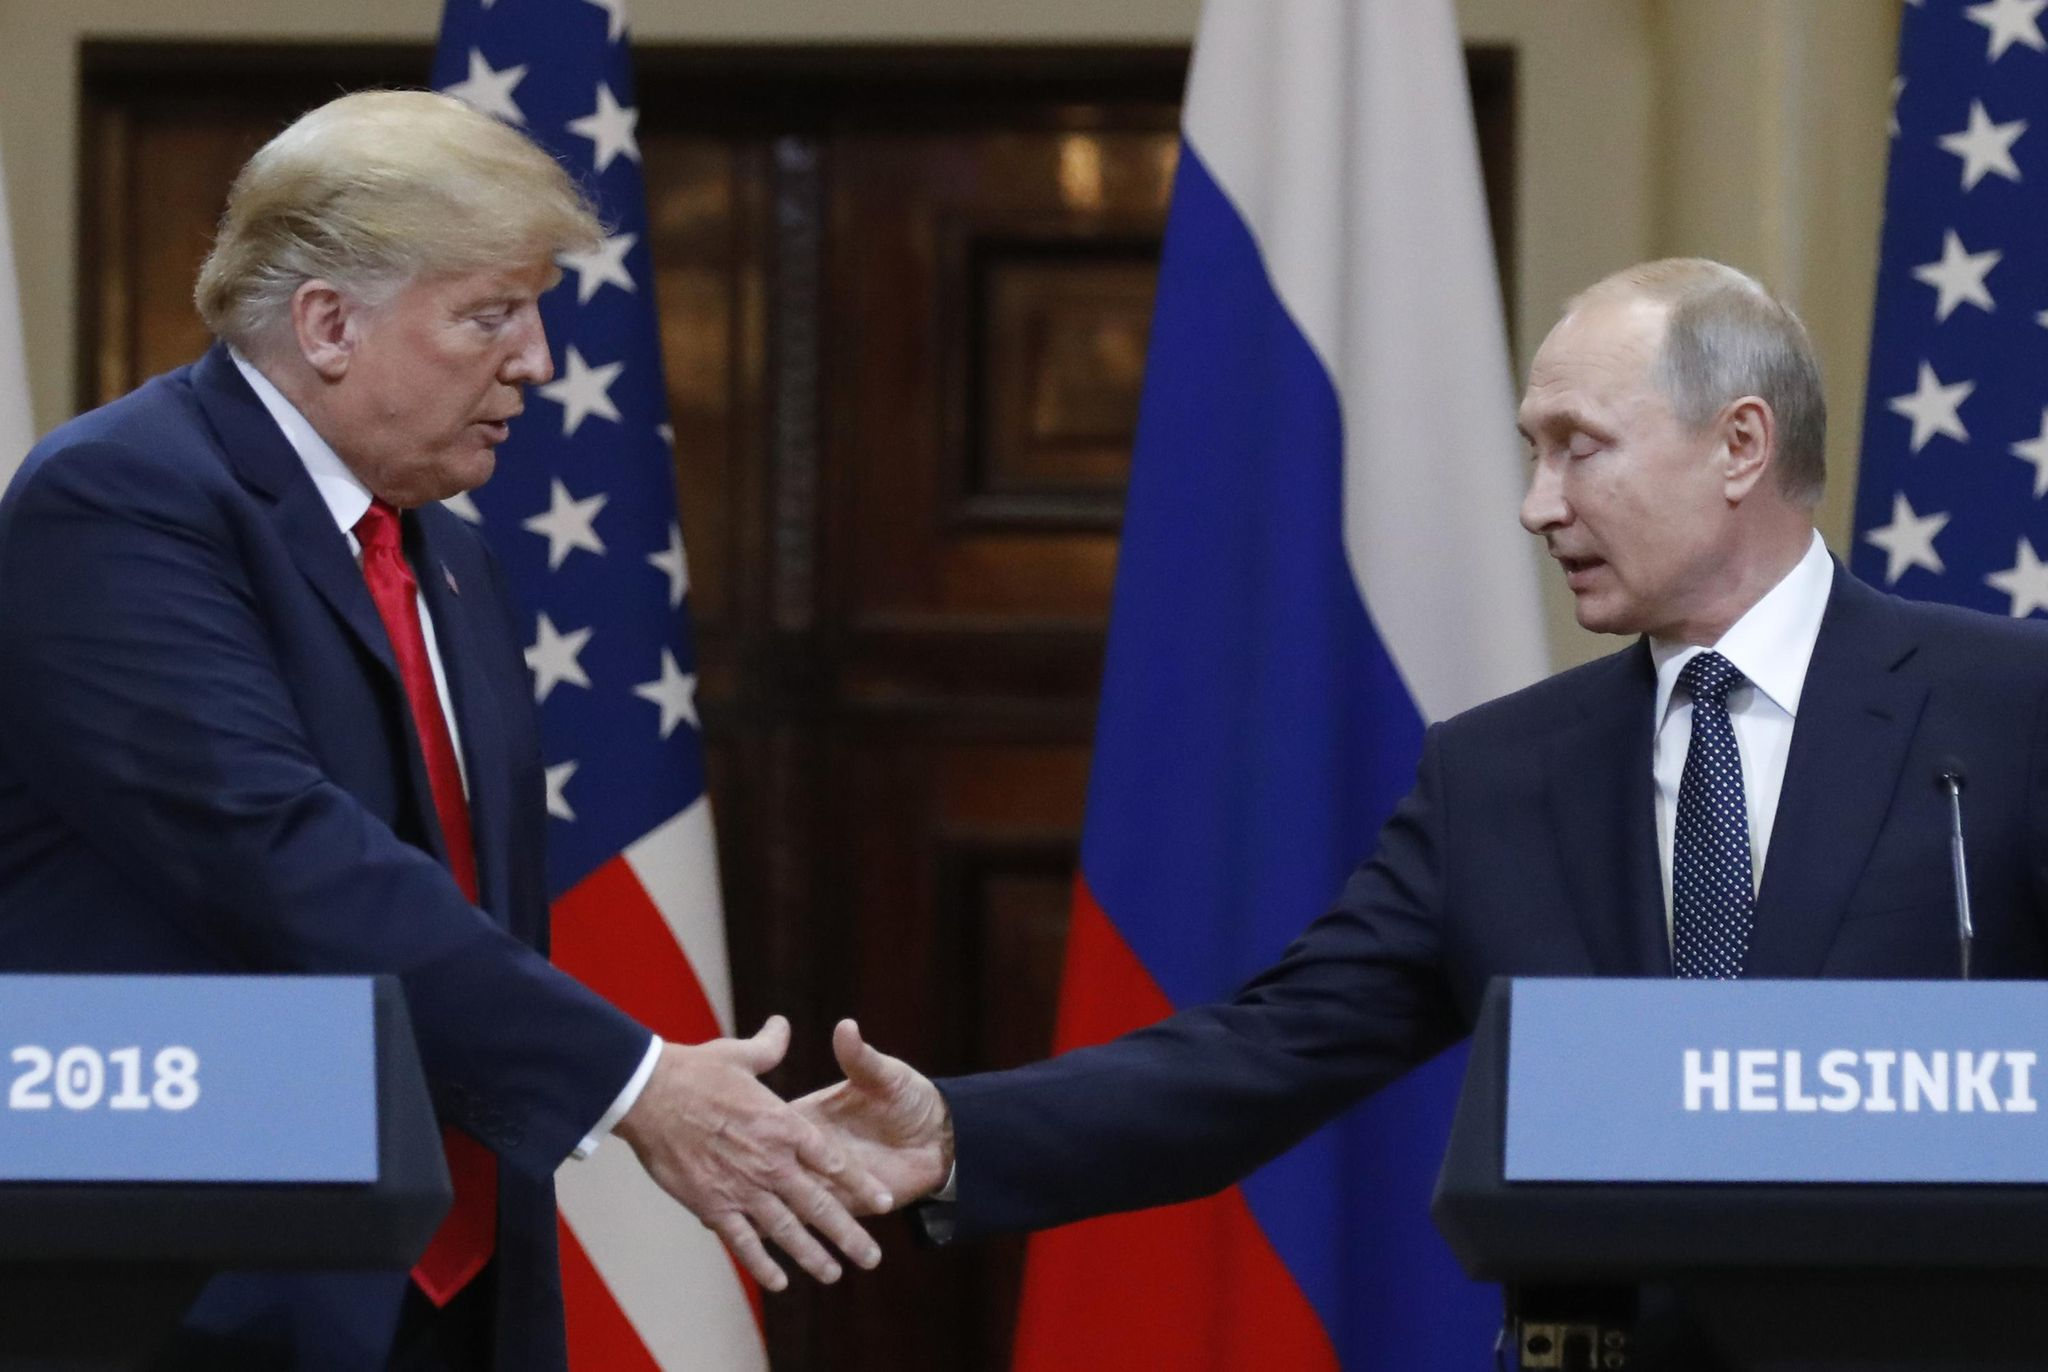 Finland_trump_putin_summit_11726_s2048x1372